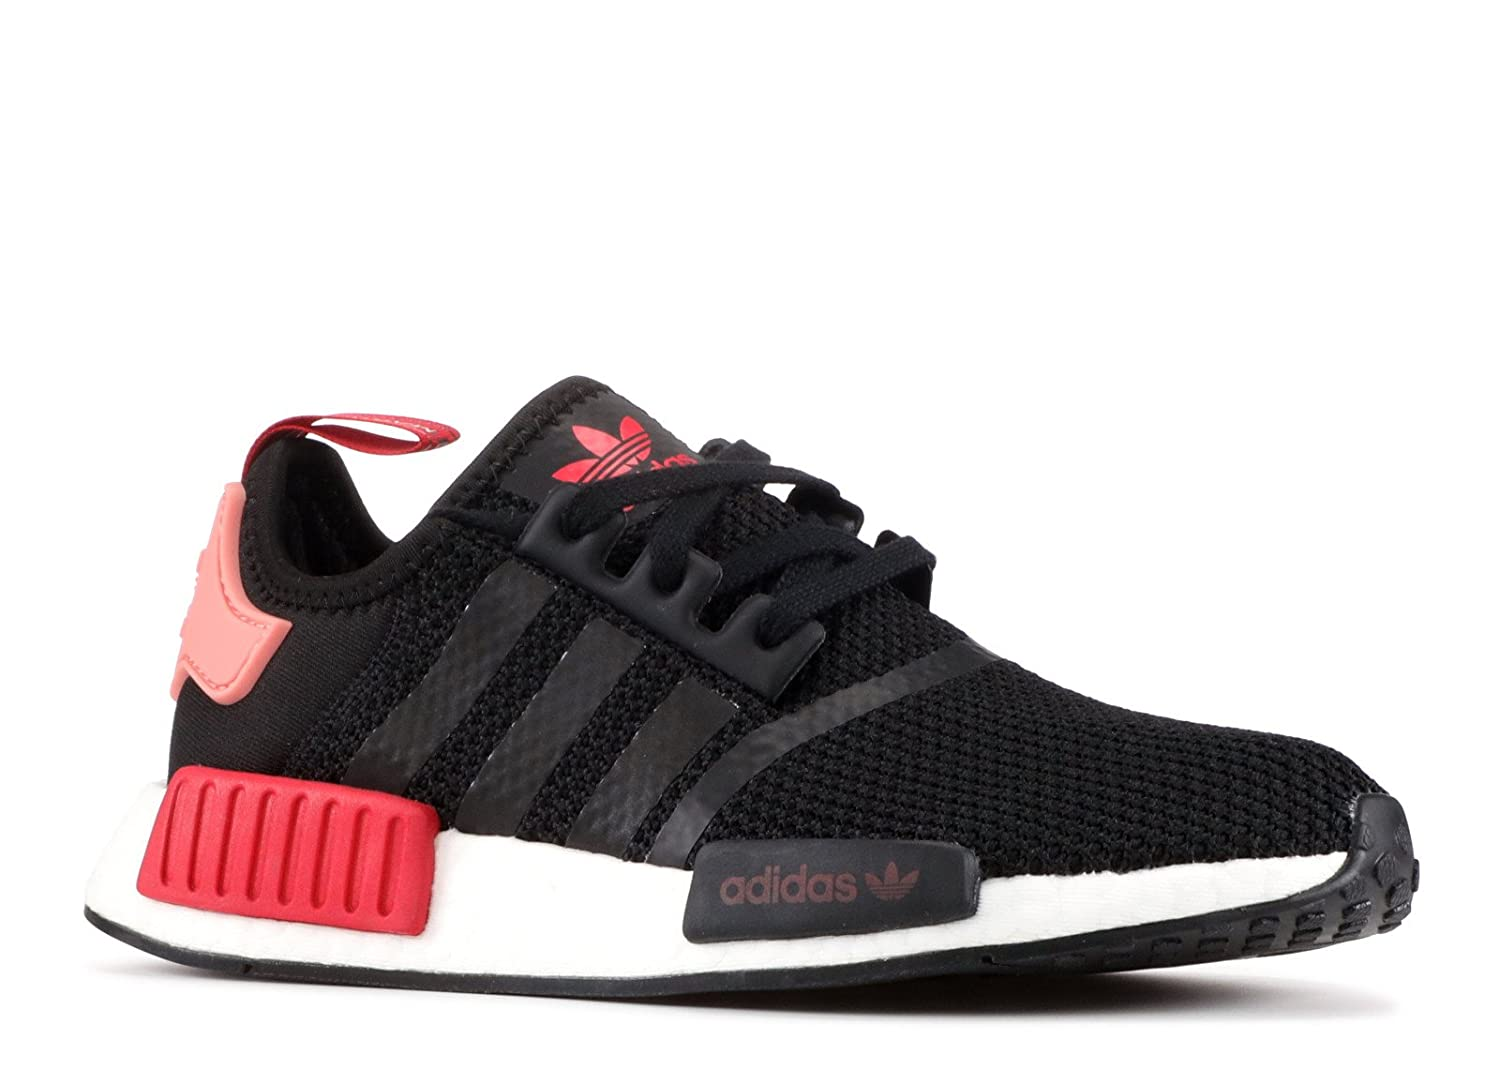 Core Black-Tactile pink-Red Adidas Originals NMD_R1 shoes Women's Casual Black